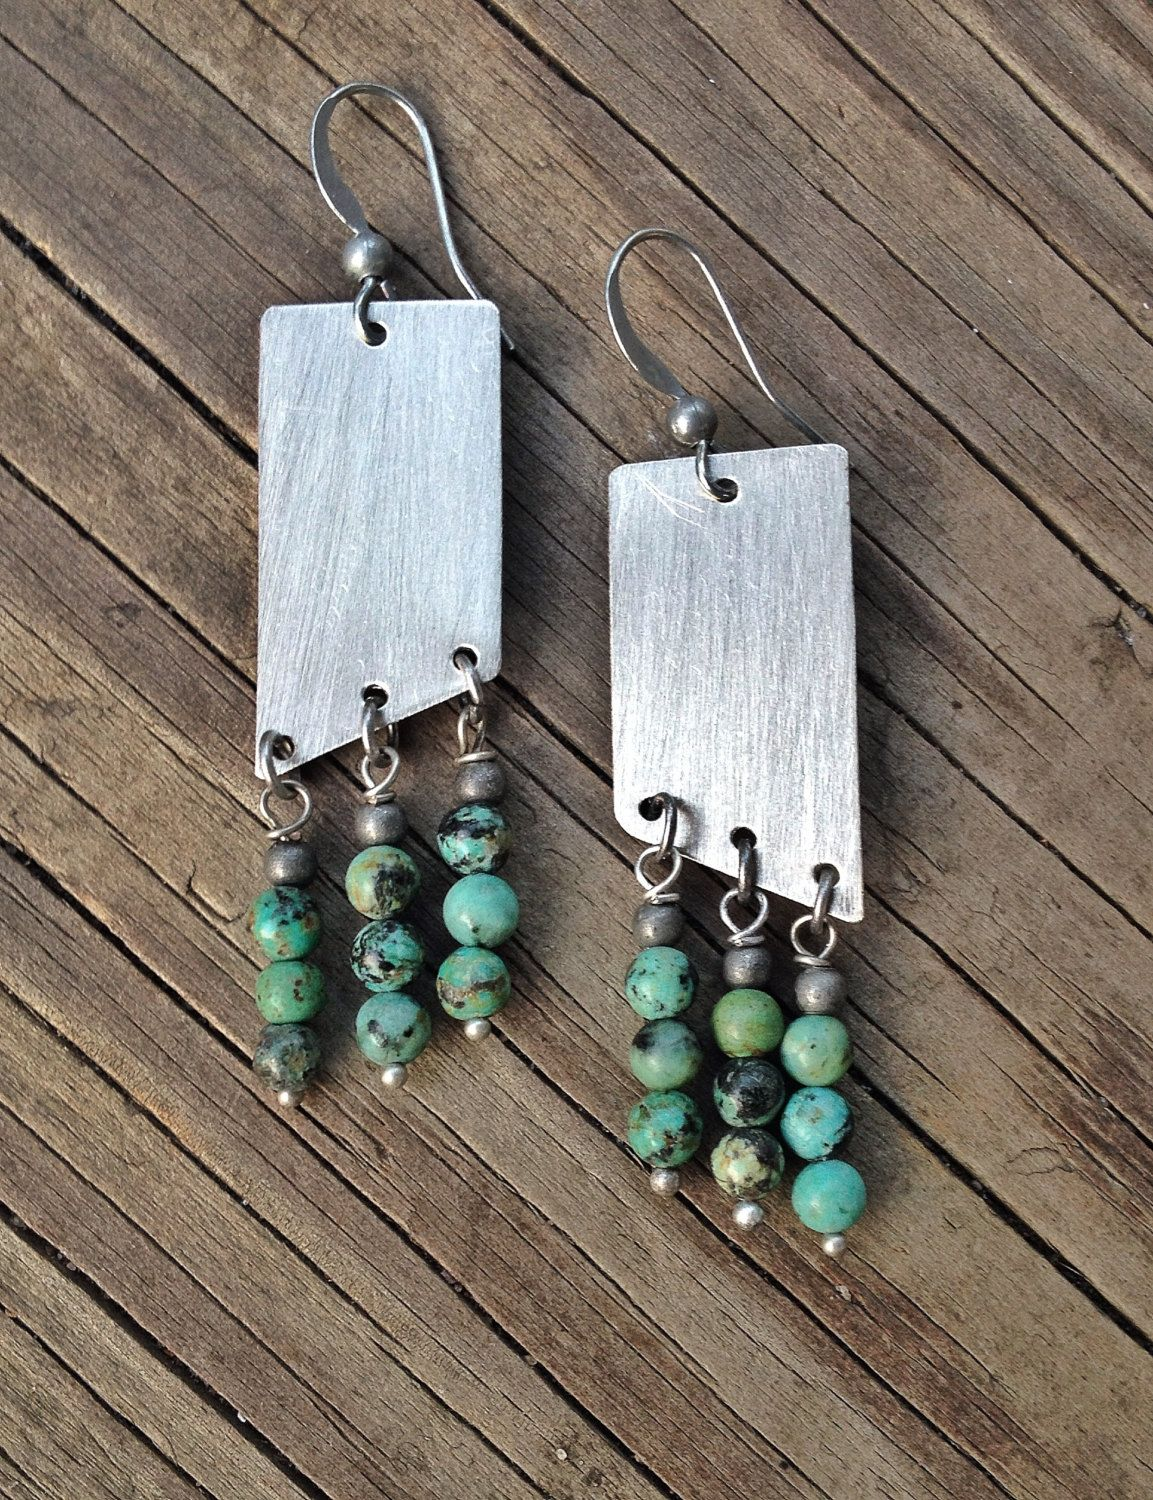 Turquoise+Jewelry+/+Turquoise+Earrings+/+Geometric+by+Lammergeier,+$32.00